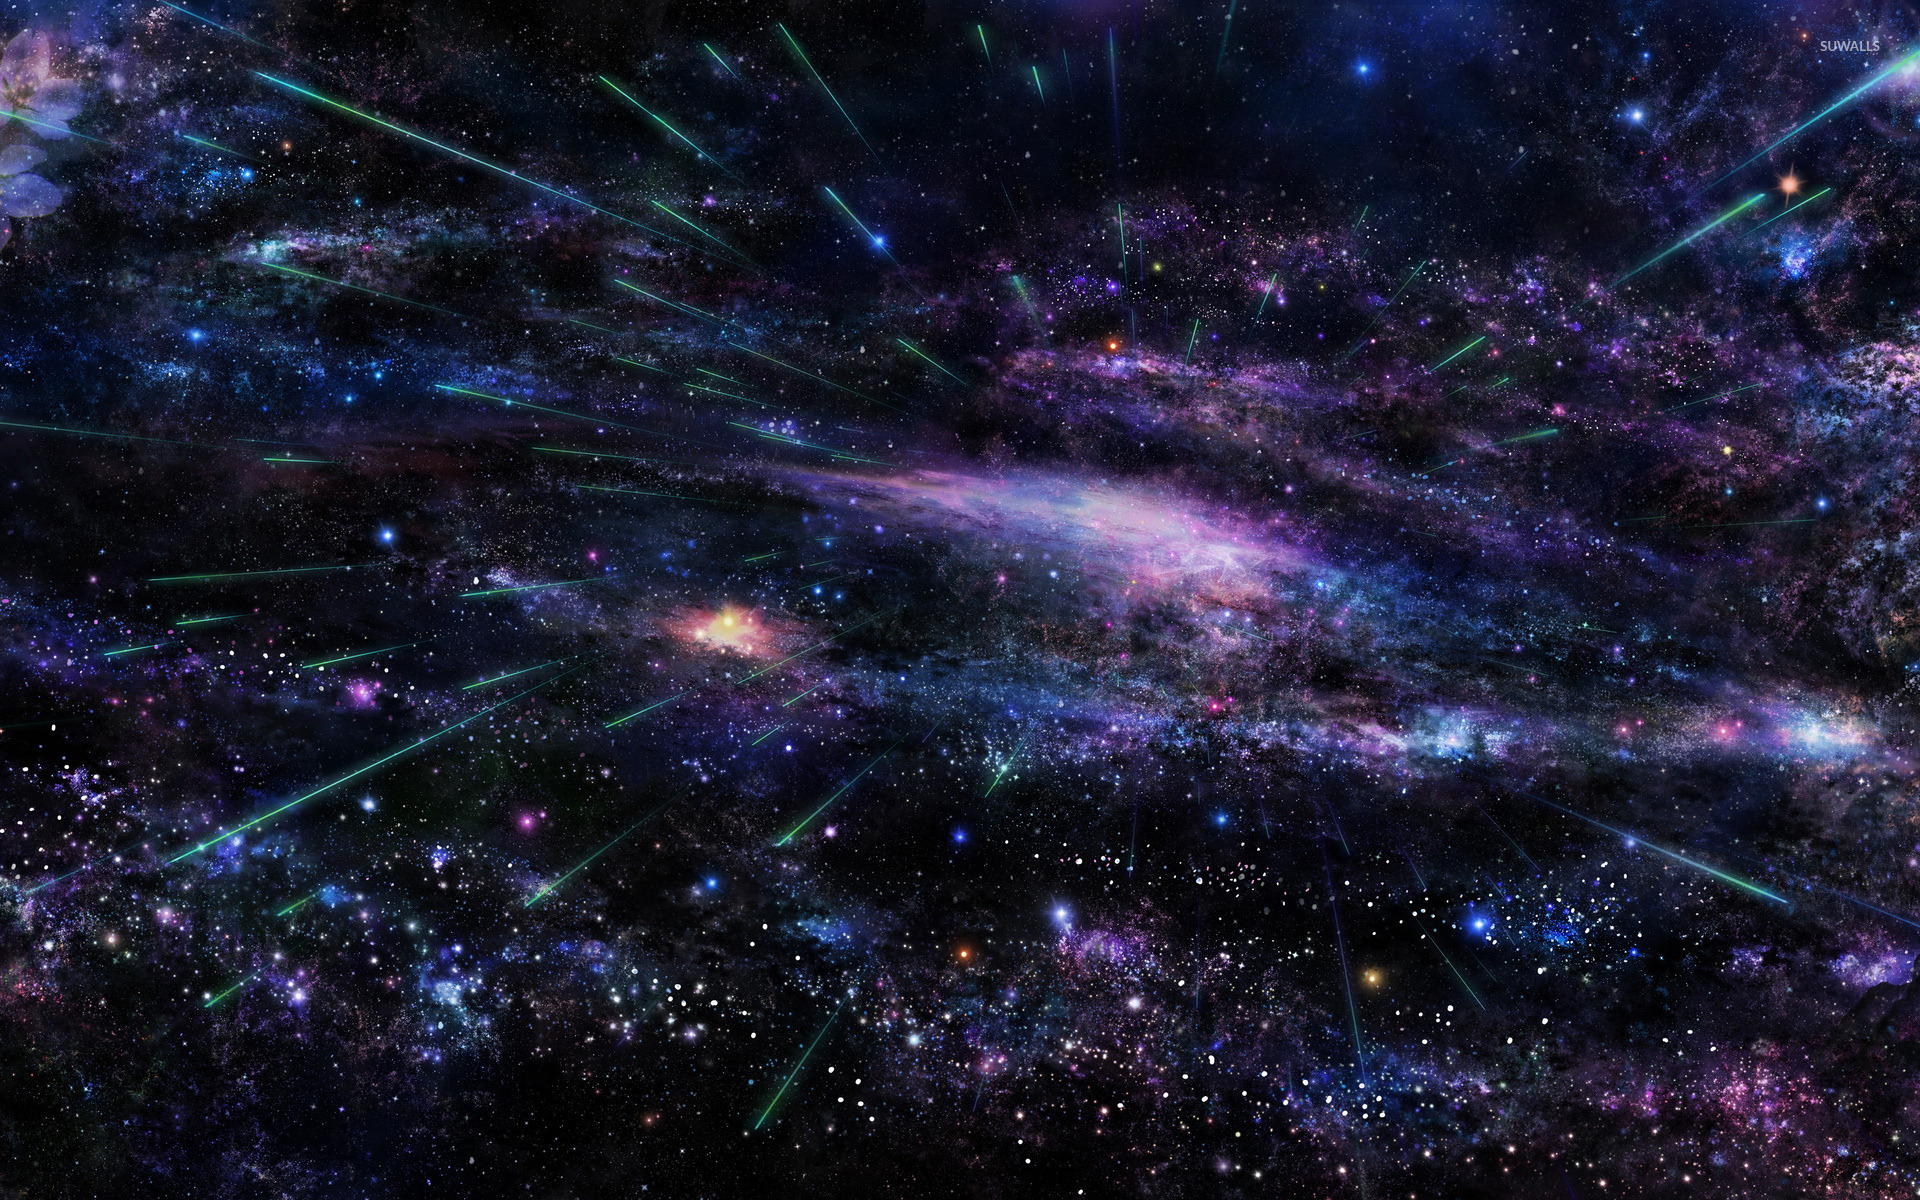 colorful space wallpaper - space wallpapers - #45564